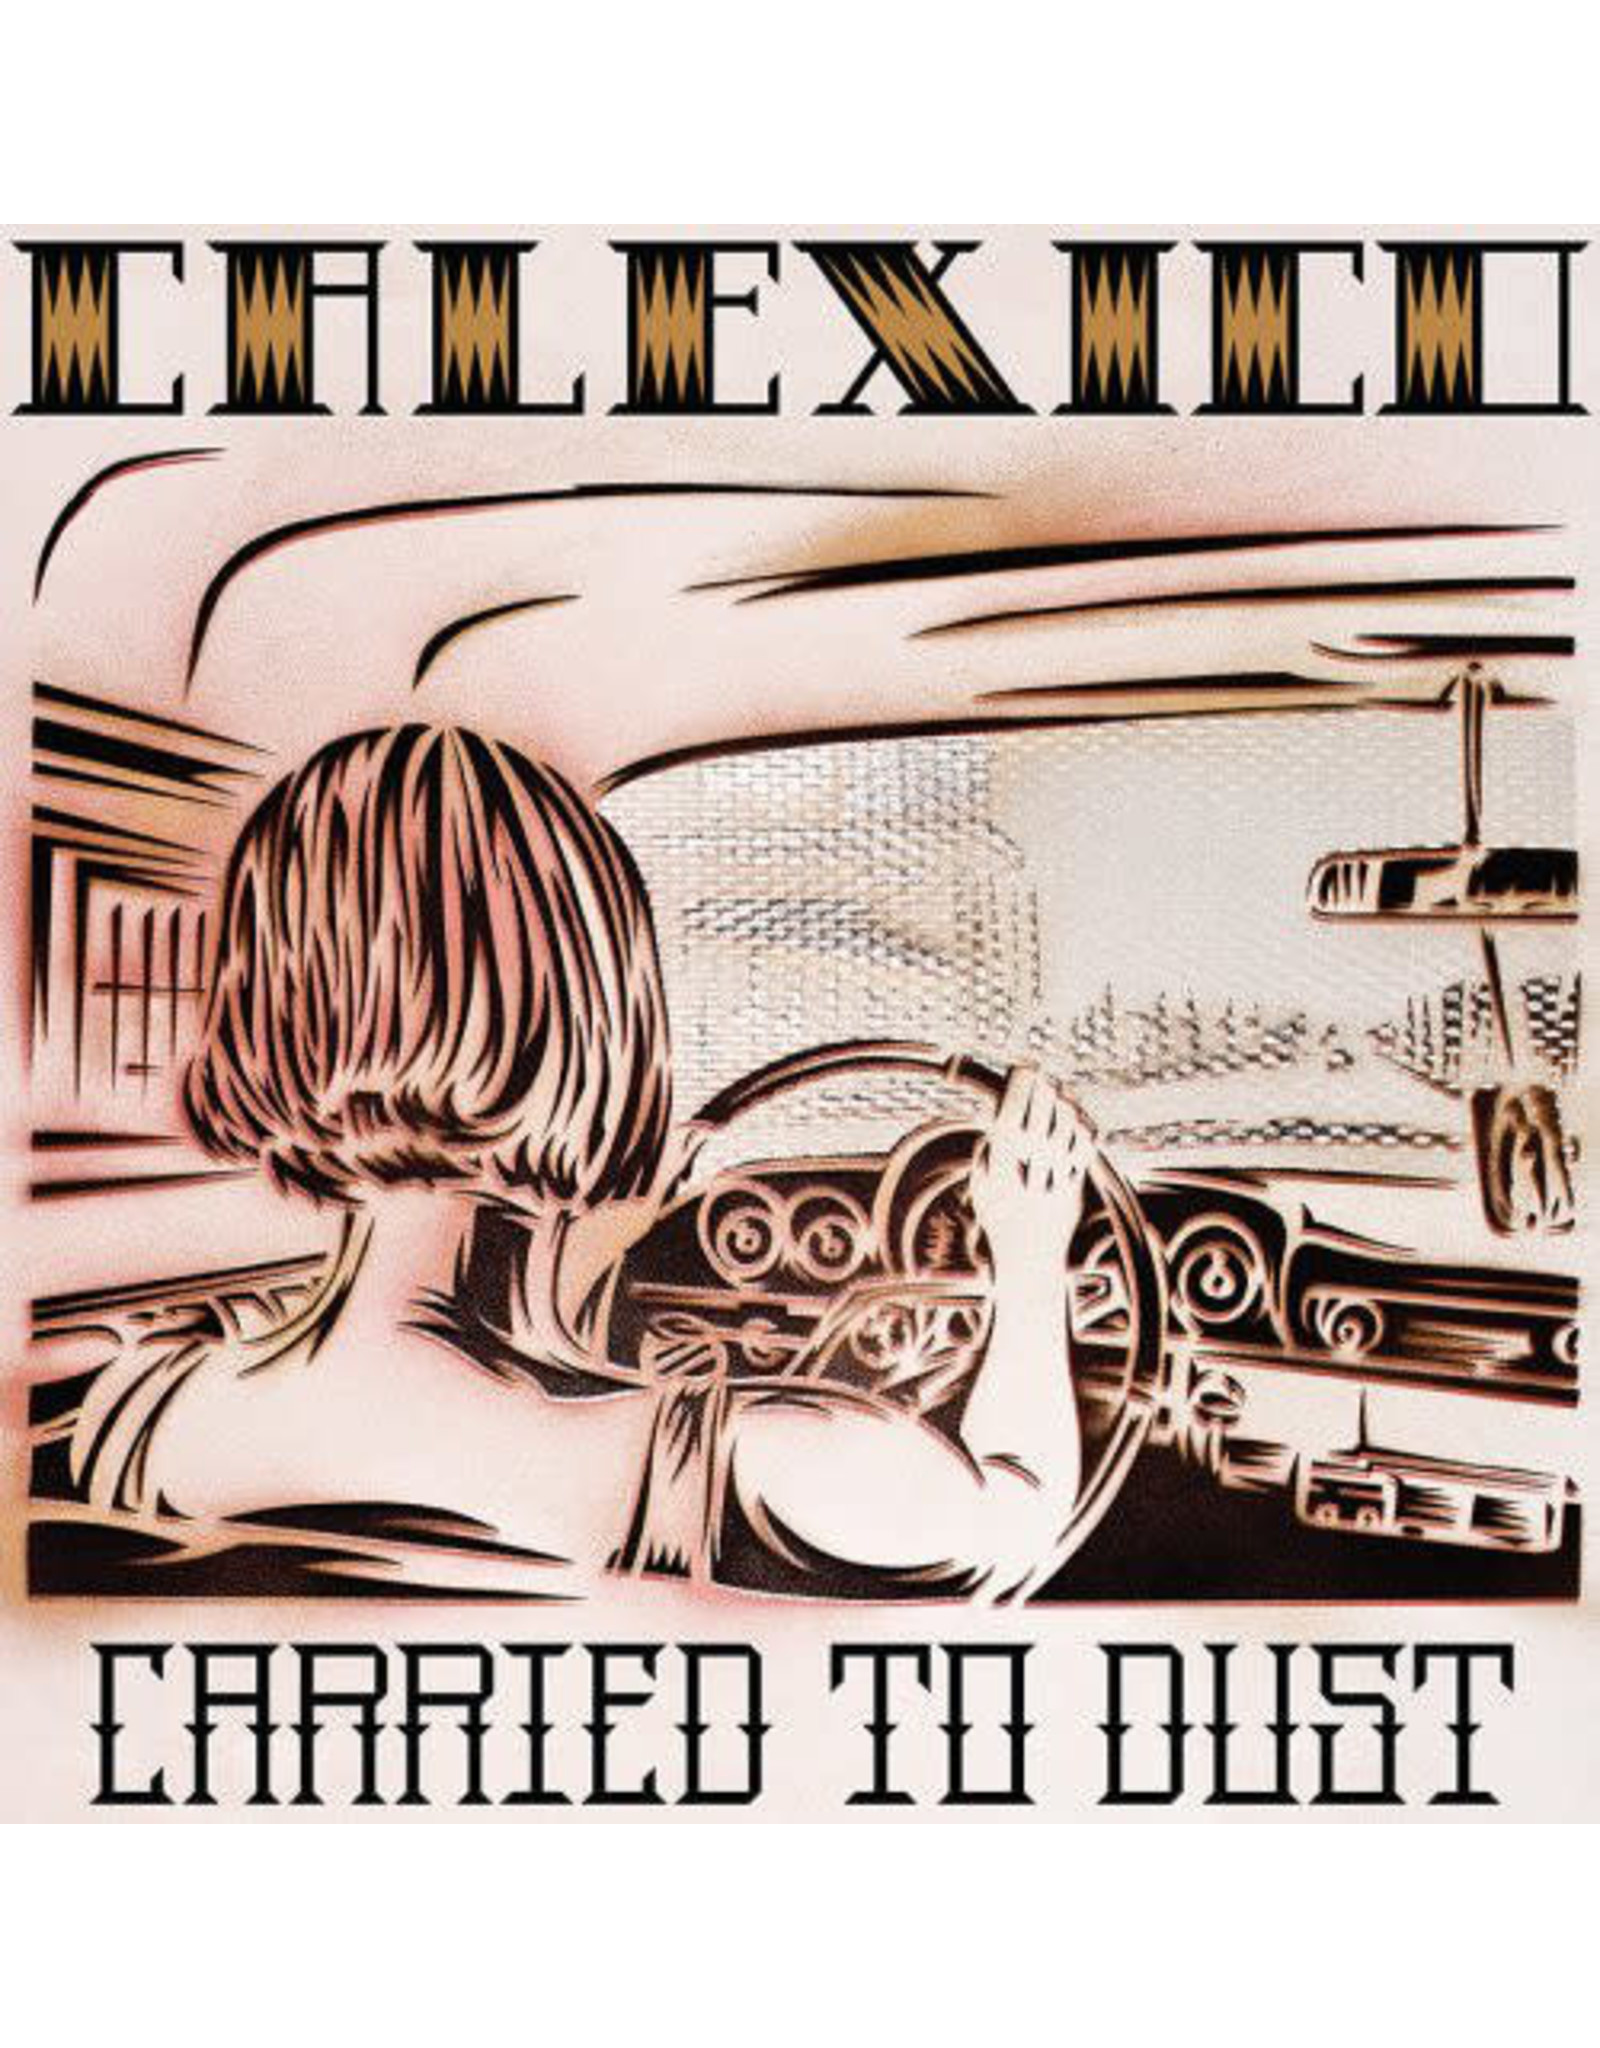 Calexico - Carried To Dust LP